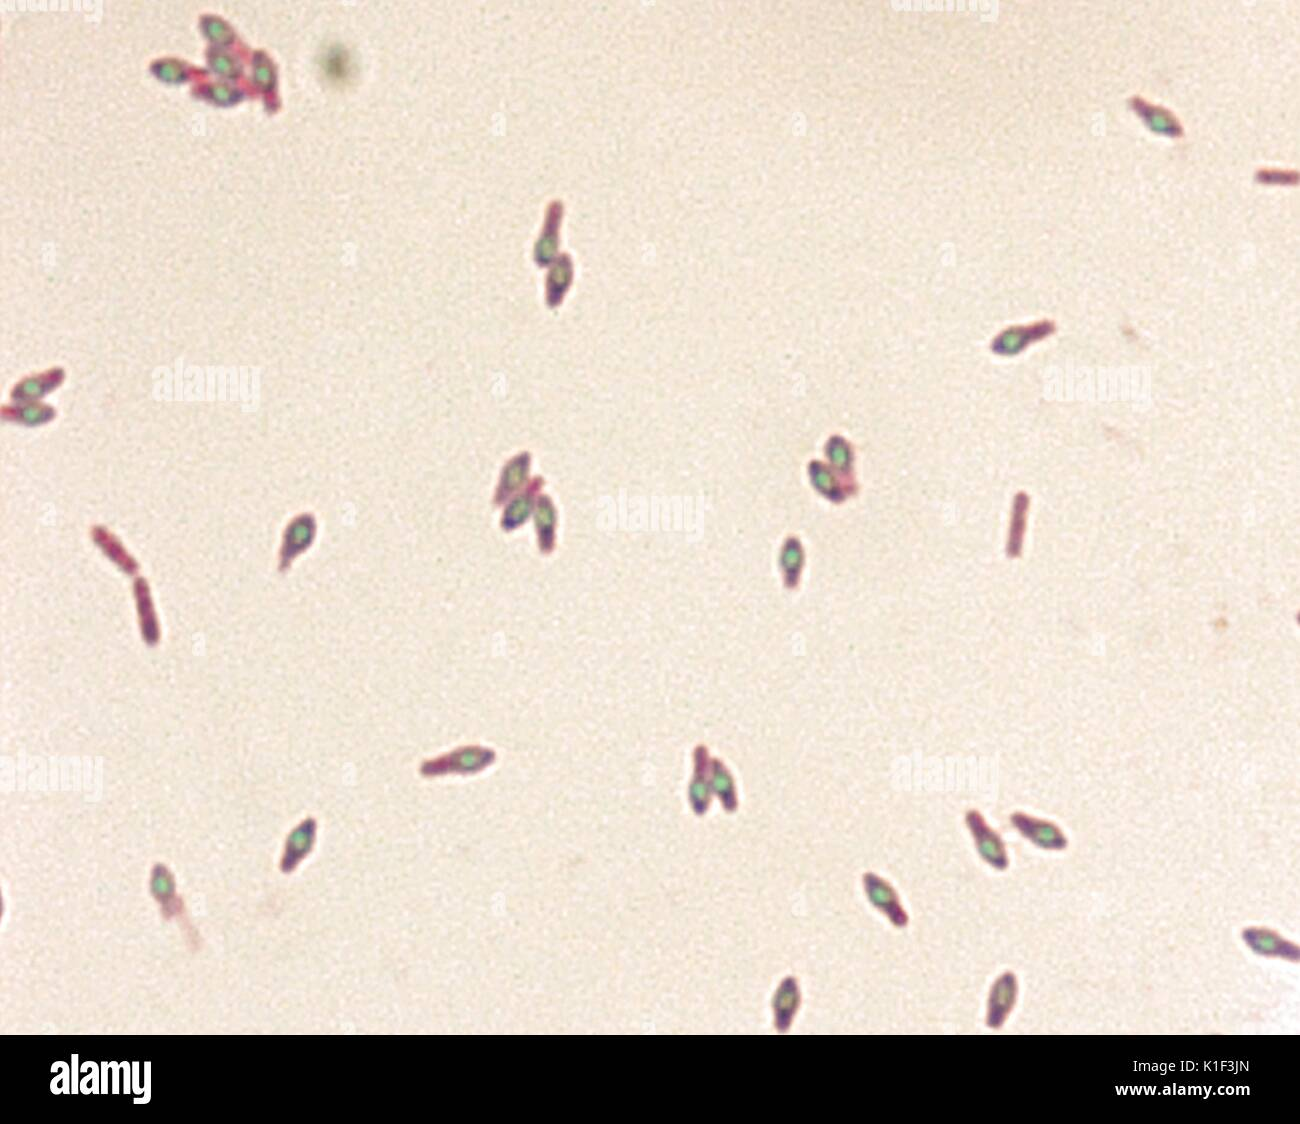 clostridium botulinum stock photos amp clostridium botulinum